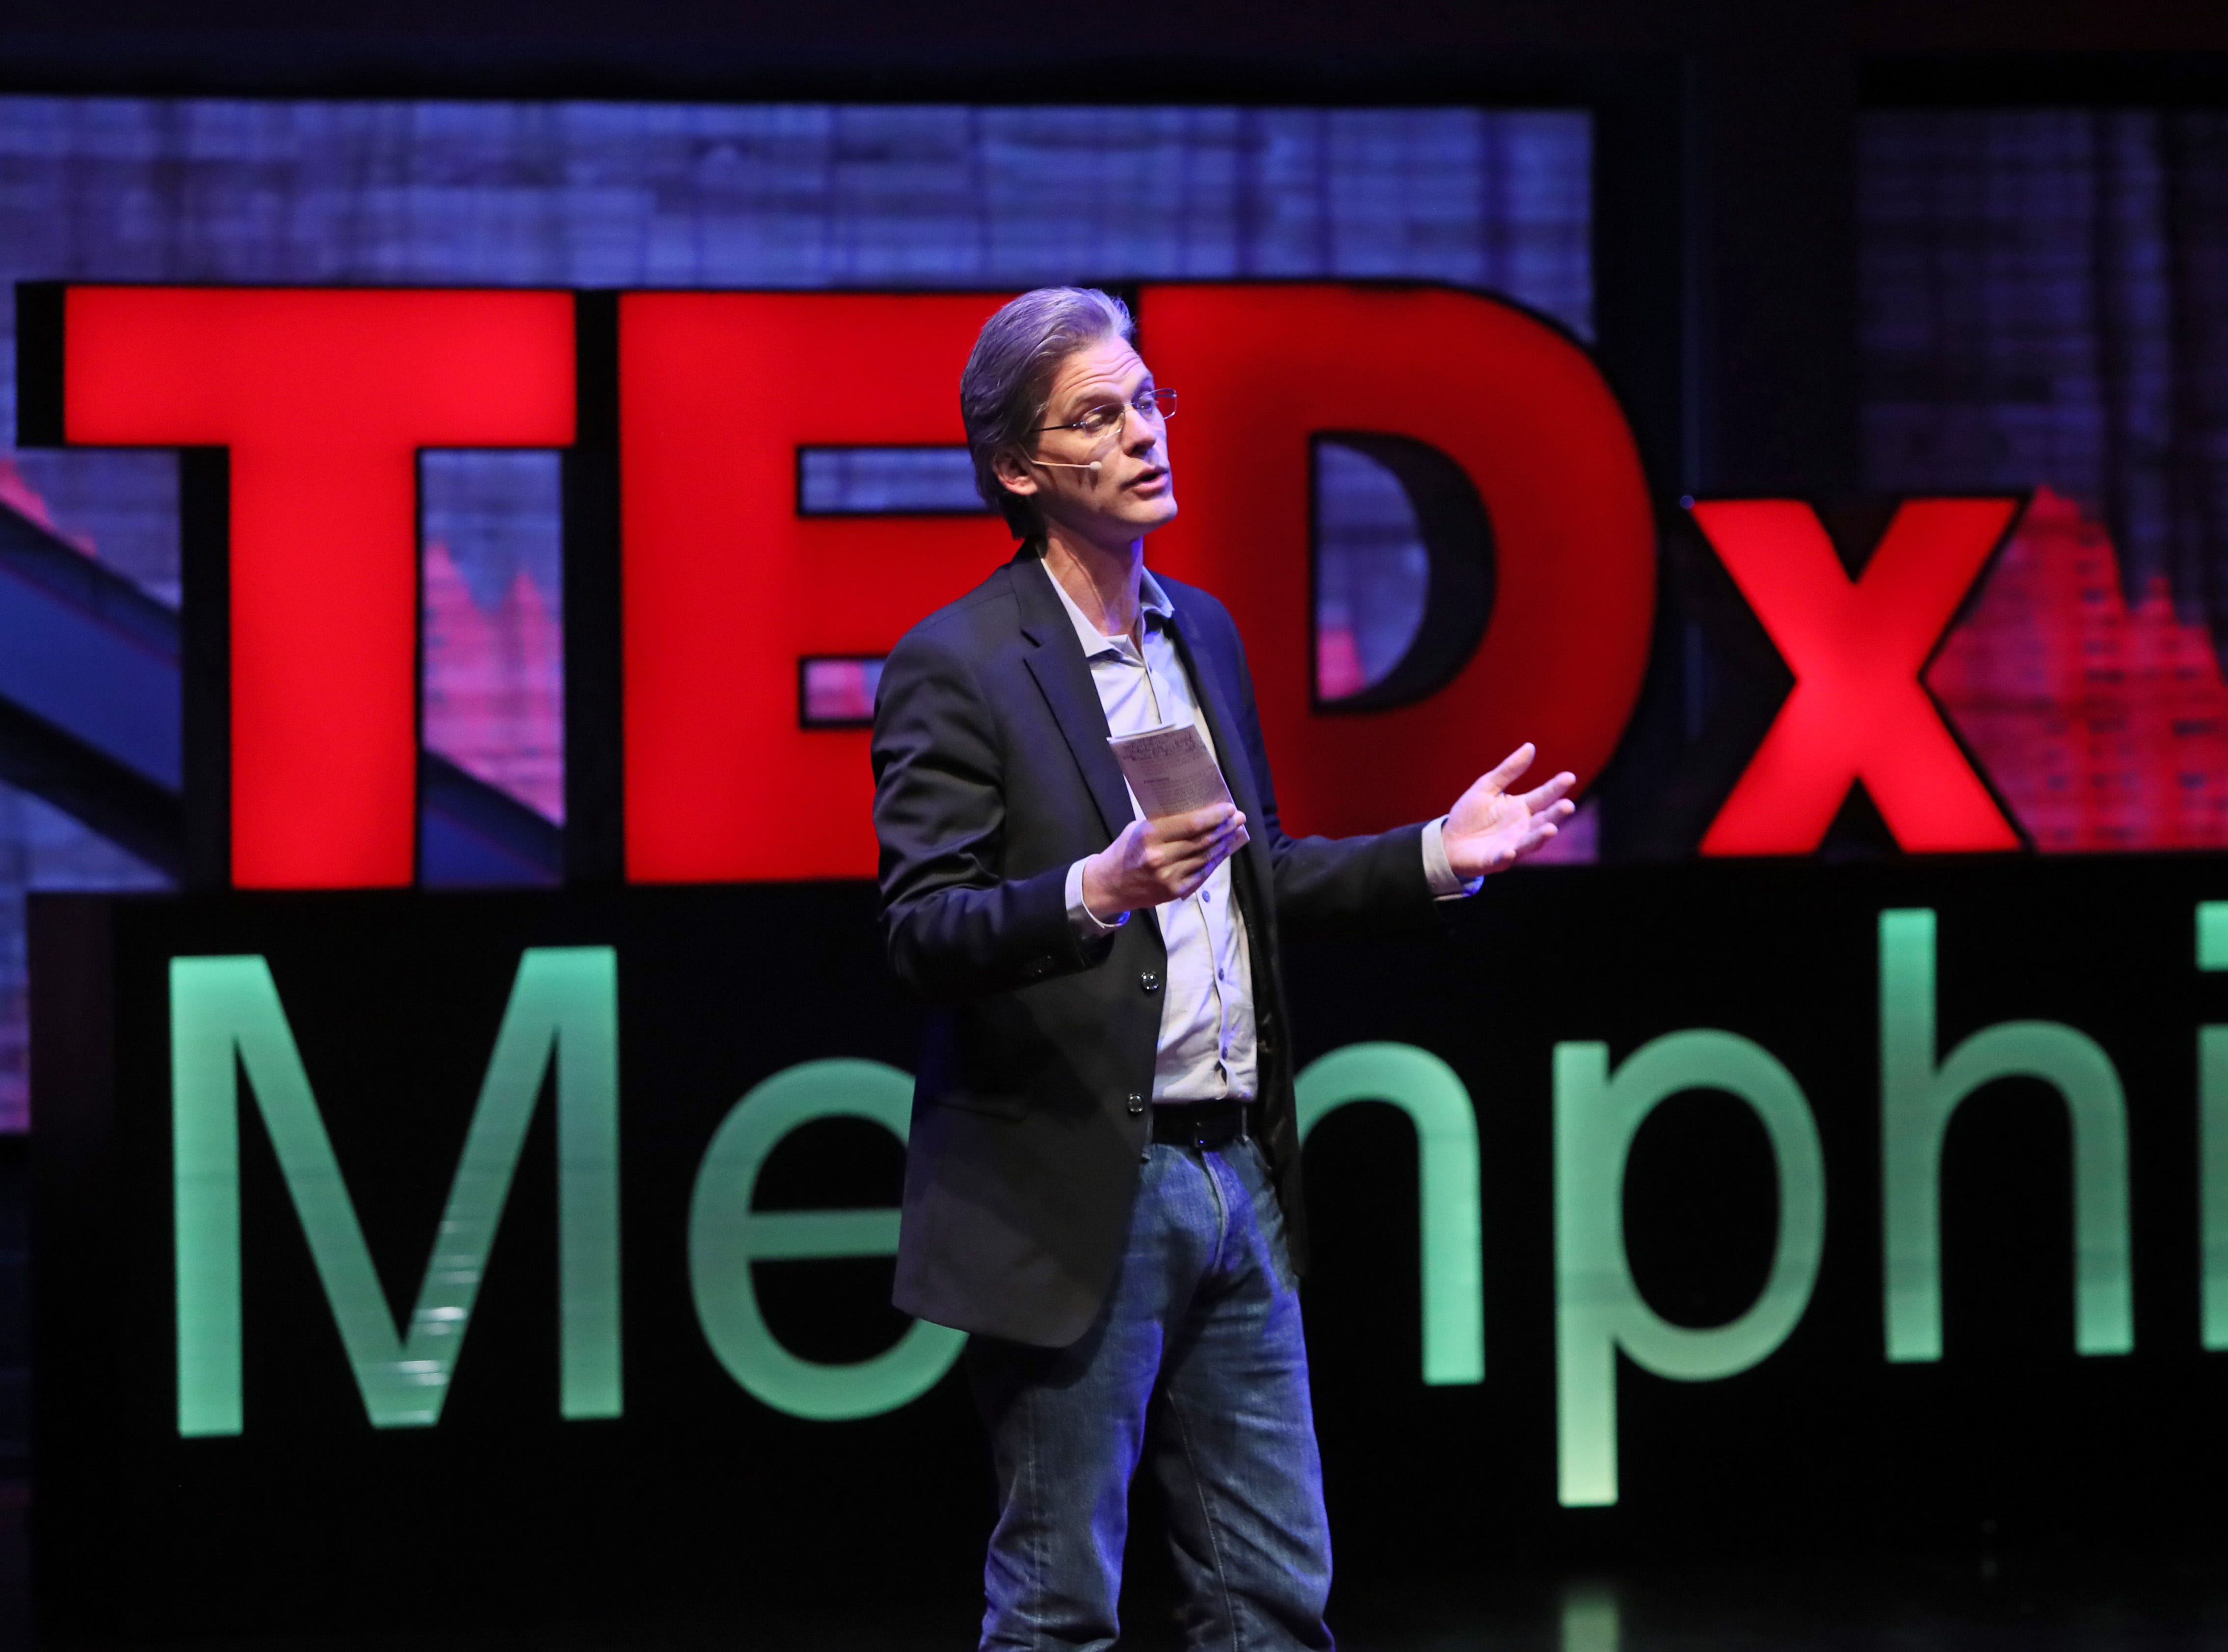 speaks during a TEDx Memphis event at the Crosstown Arts Theatre Saturday, Feb. 2, 2019.